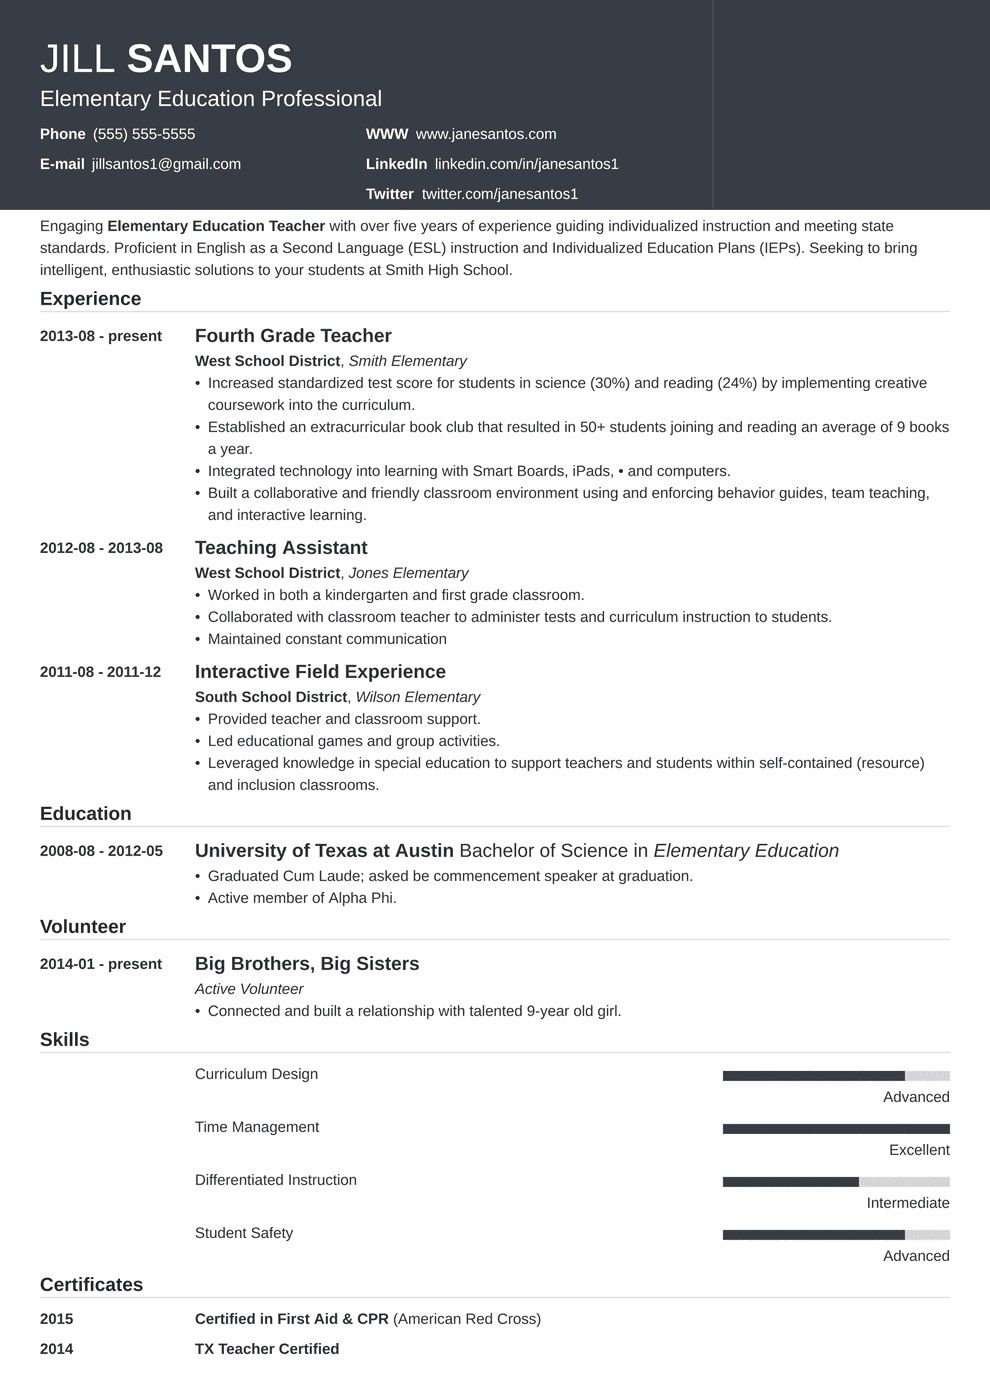 004 Archaicawful Resume Template For Teacher Highest Clarity  Free Download Australia Microsoft Word 2007Full